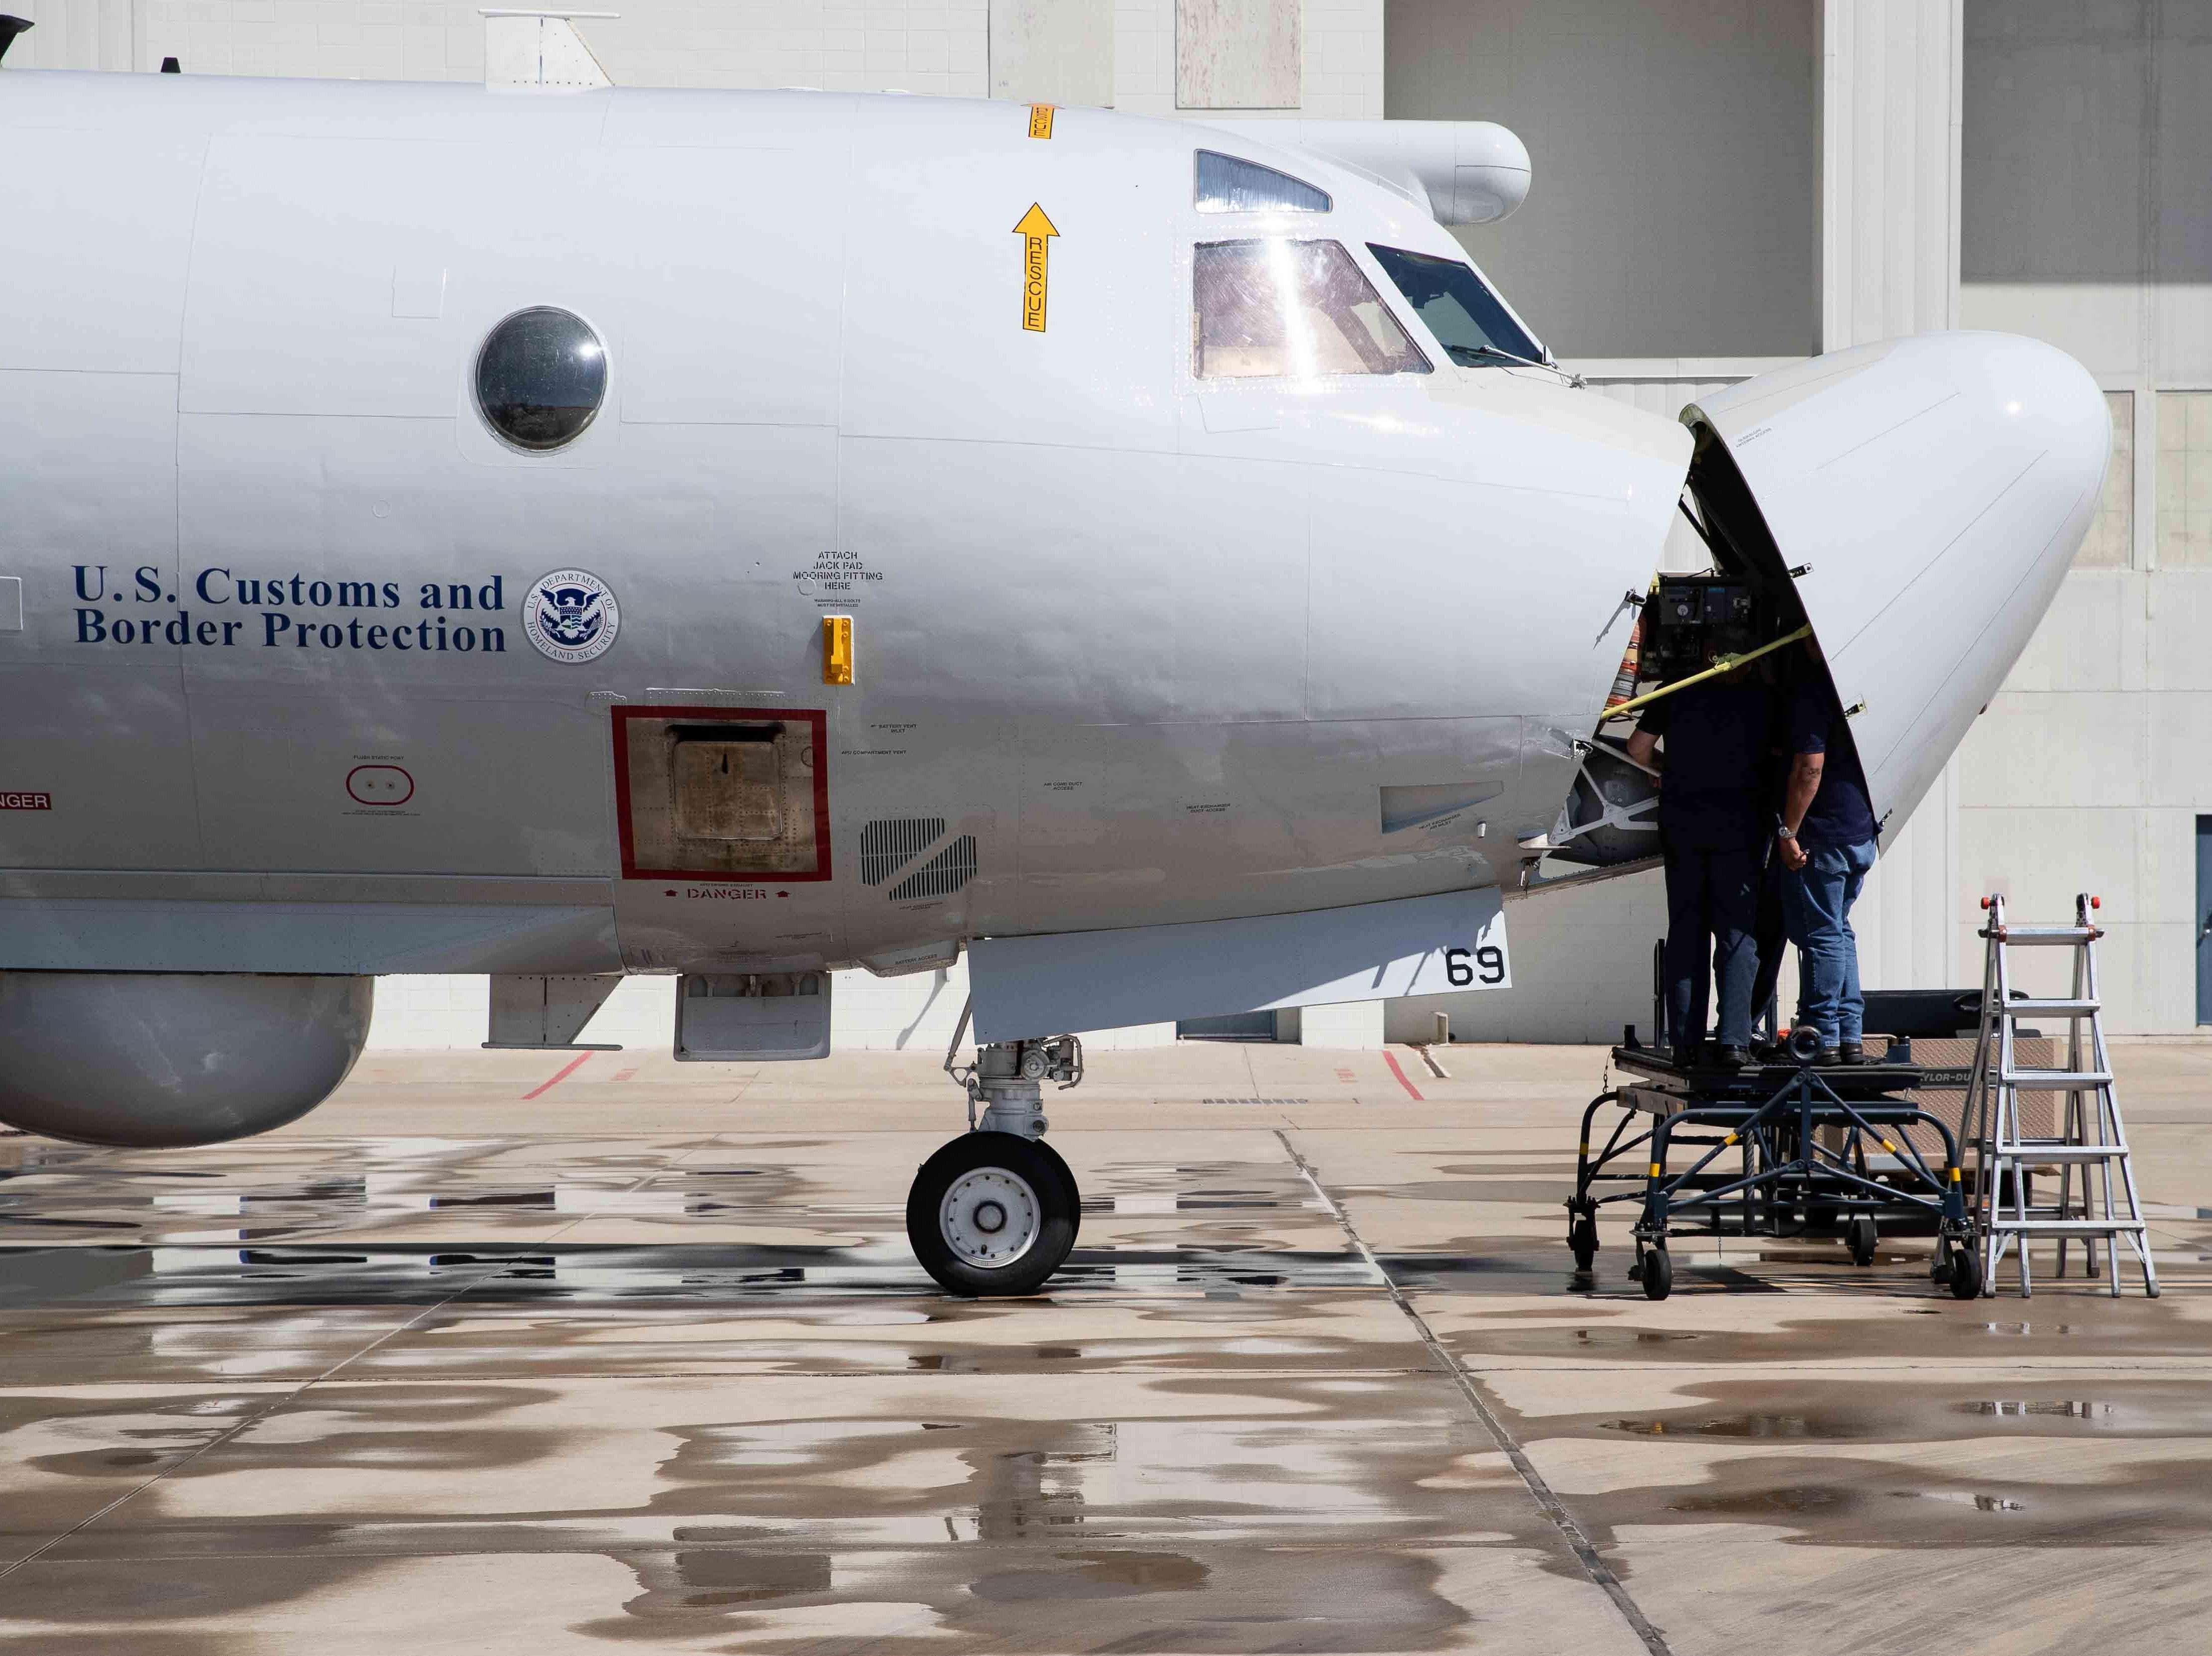 Customs and Border Protection's P-3 Orion aircraft being worked on at their National Air Security Operations Center on Navy Air Station Corpus Christi on Wednesday, Feb. 20, 2019.